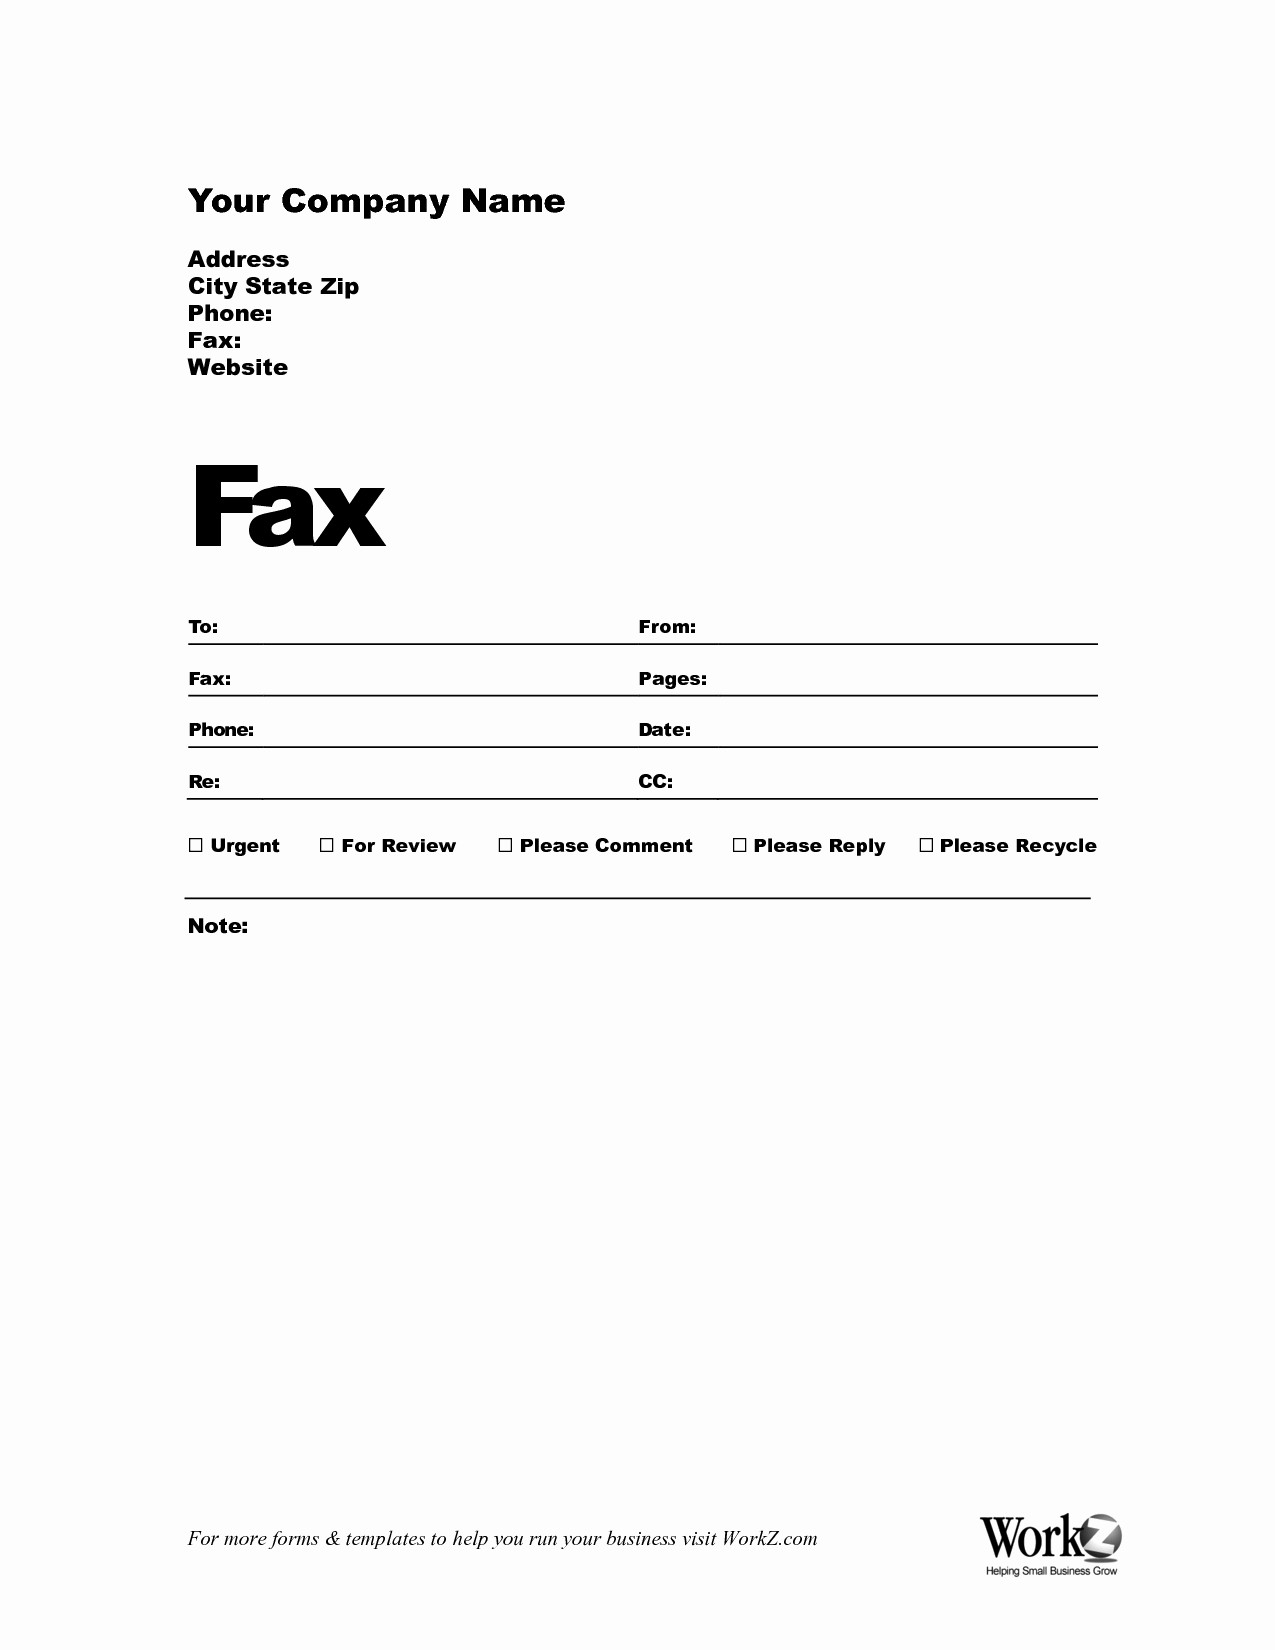 Fax Cover Letter Template Google Docs - Unique Book Template Google Docs